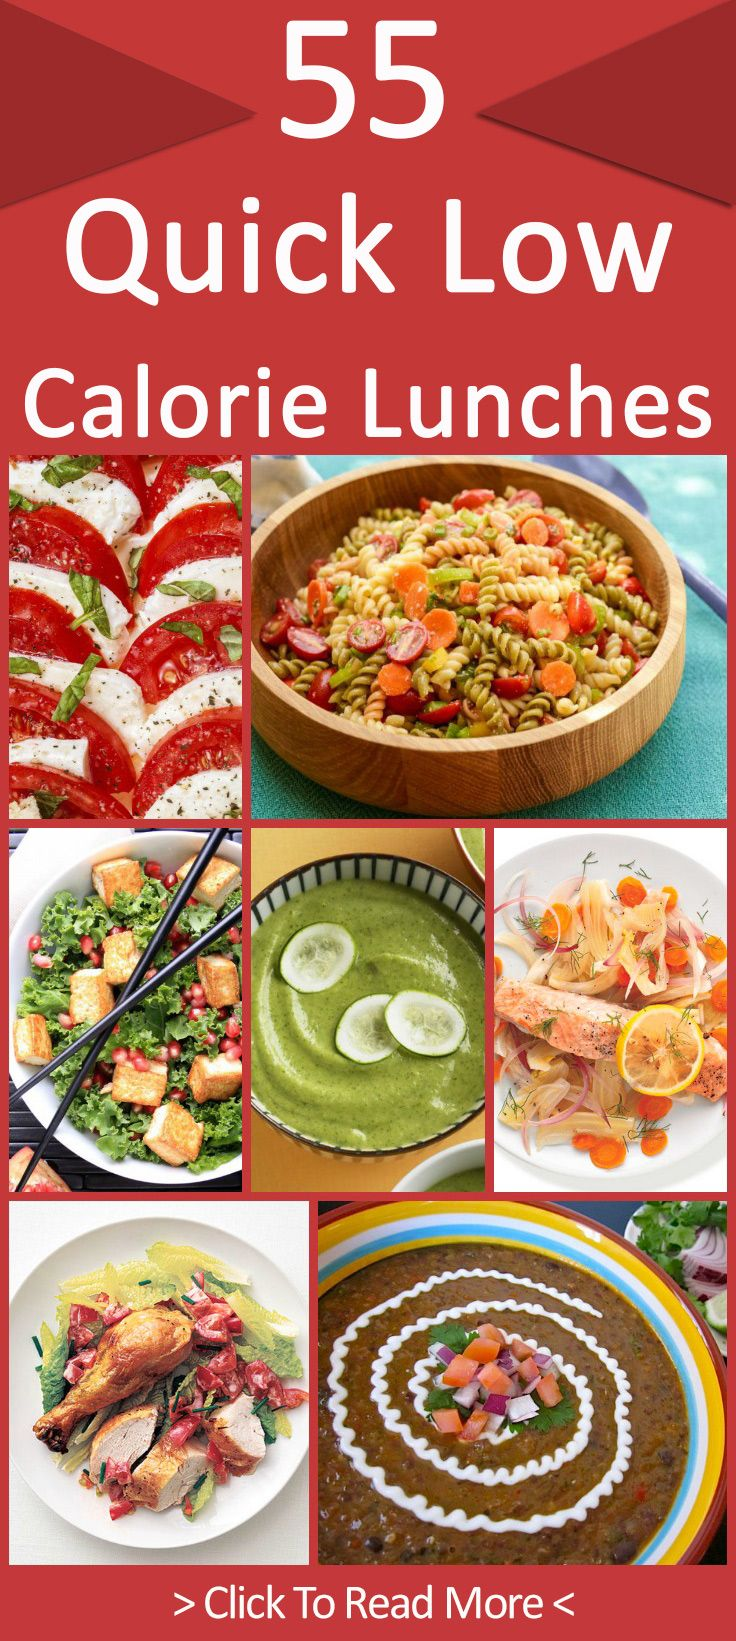 55 Quick Low Calorie Lunches That Are Yummy To Eat